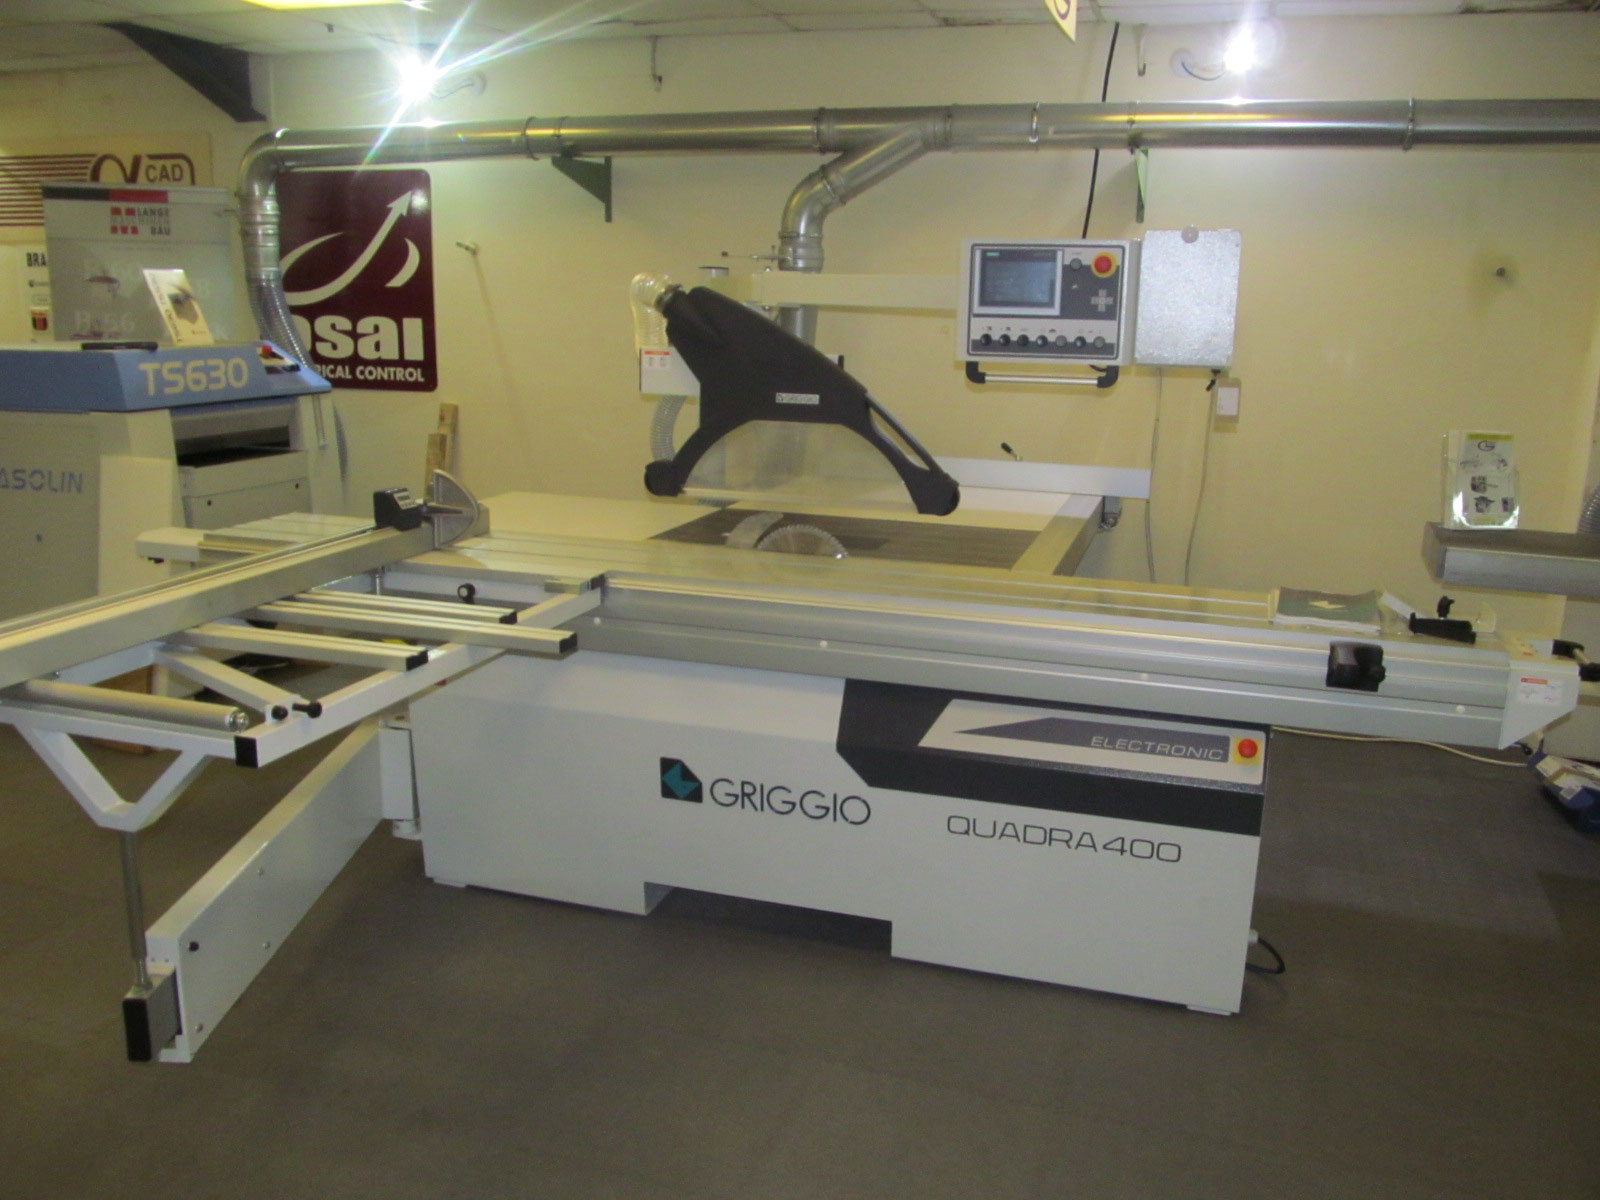 Griggio Digit 3- 3 axis panelsaw